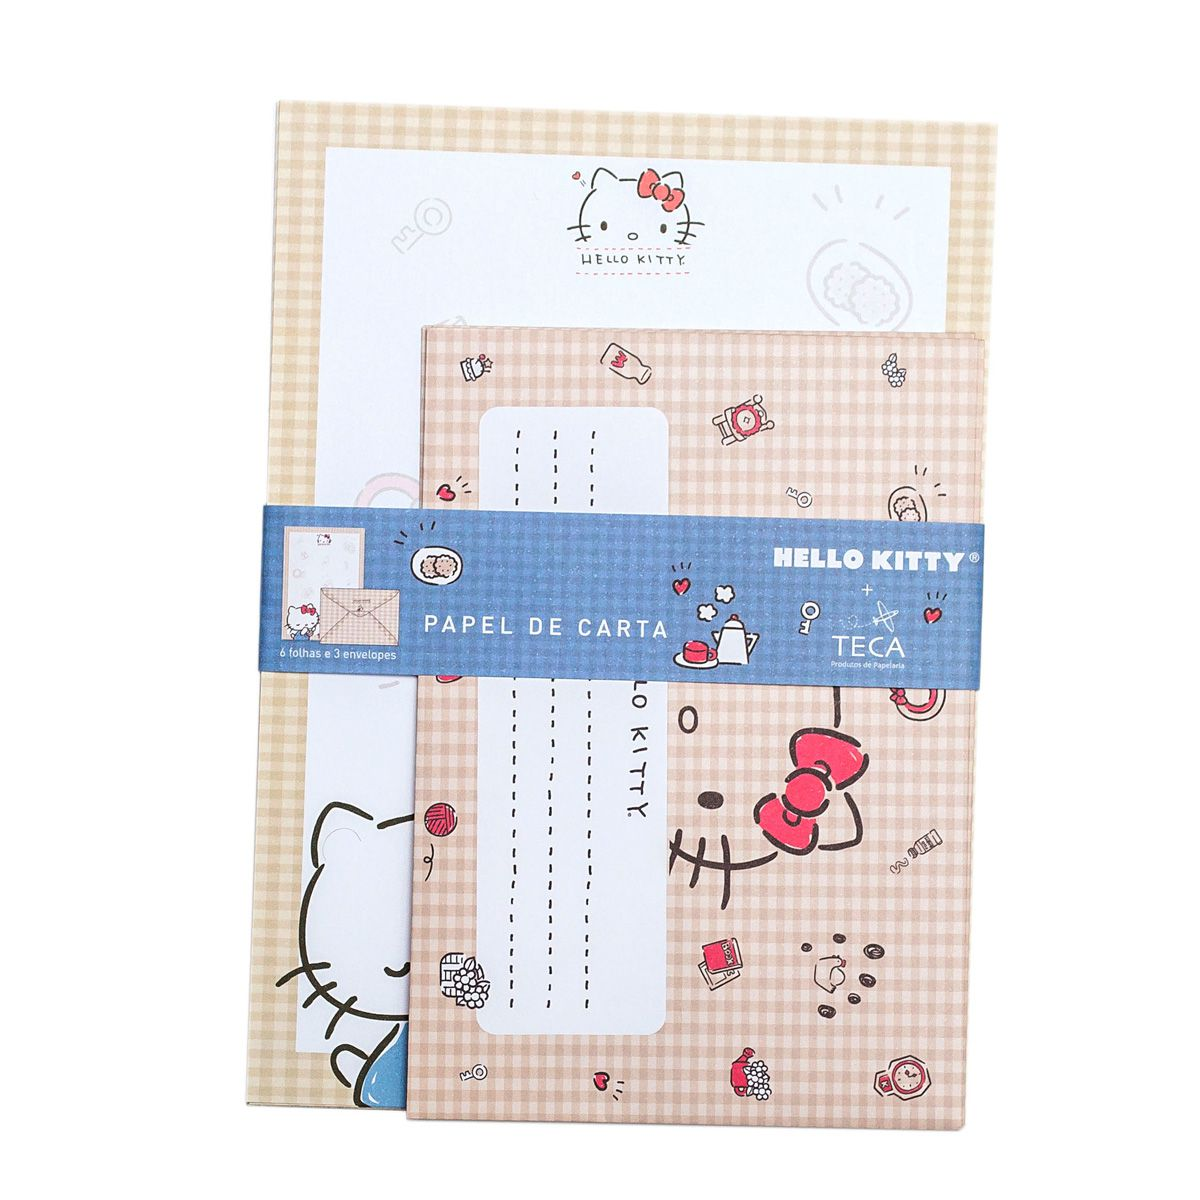 PAPEL DE CARTA HELLO KITTY PIQUENIQUE